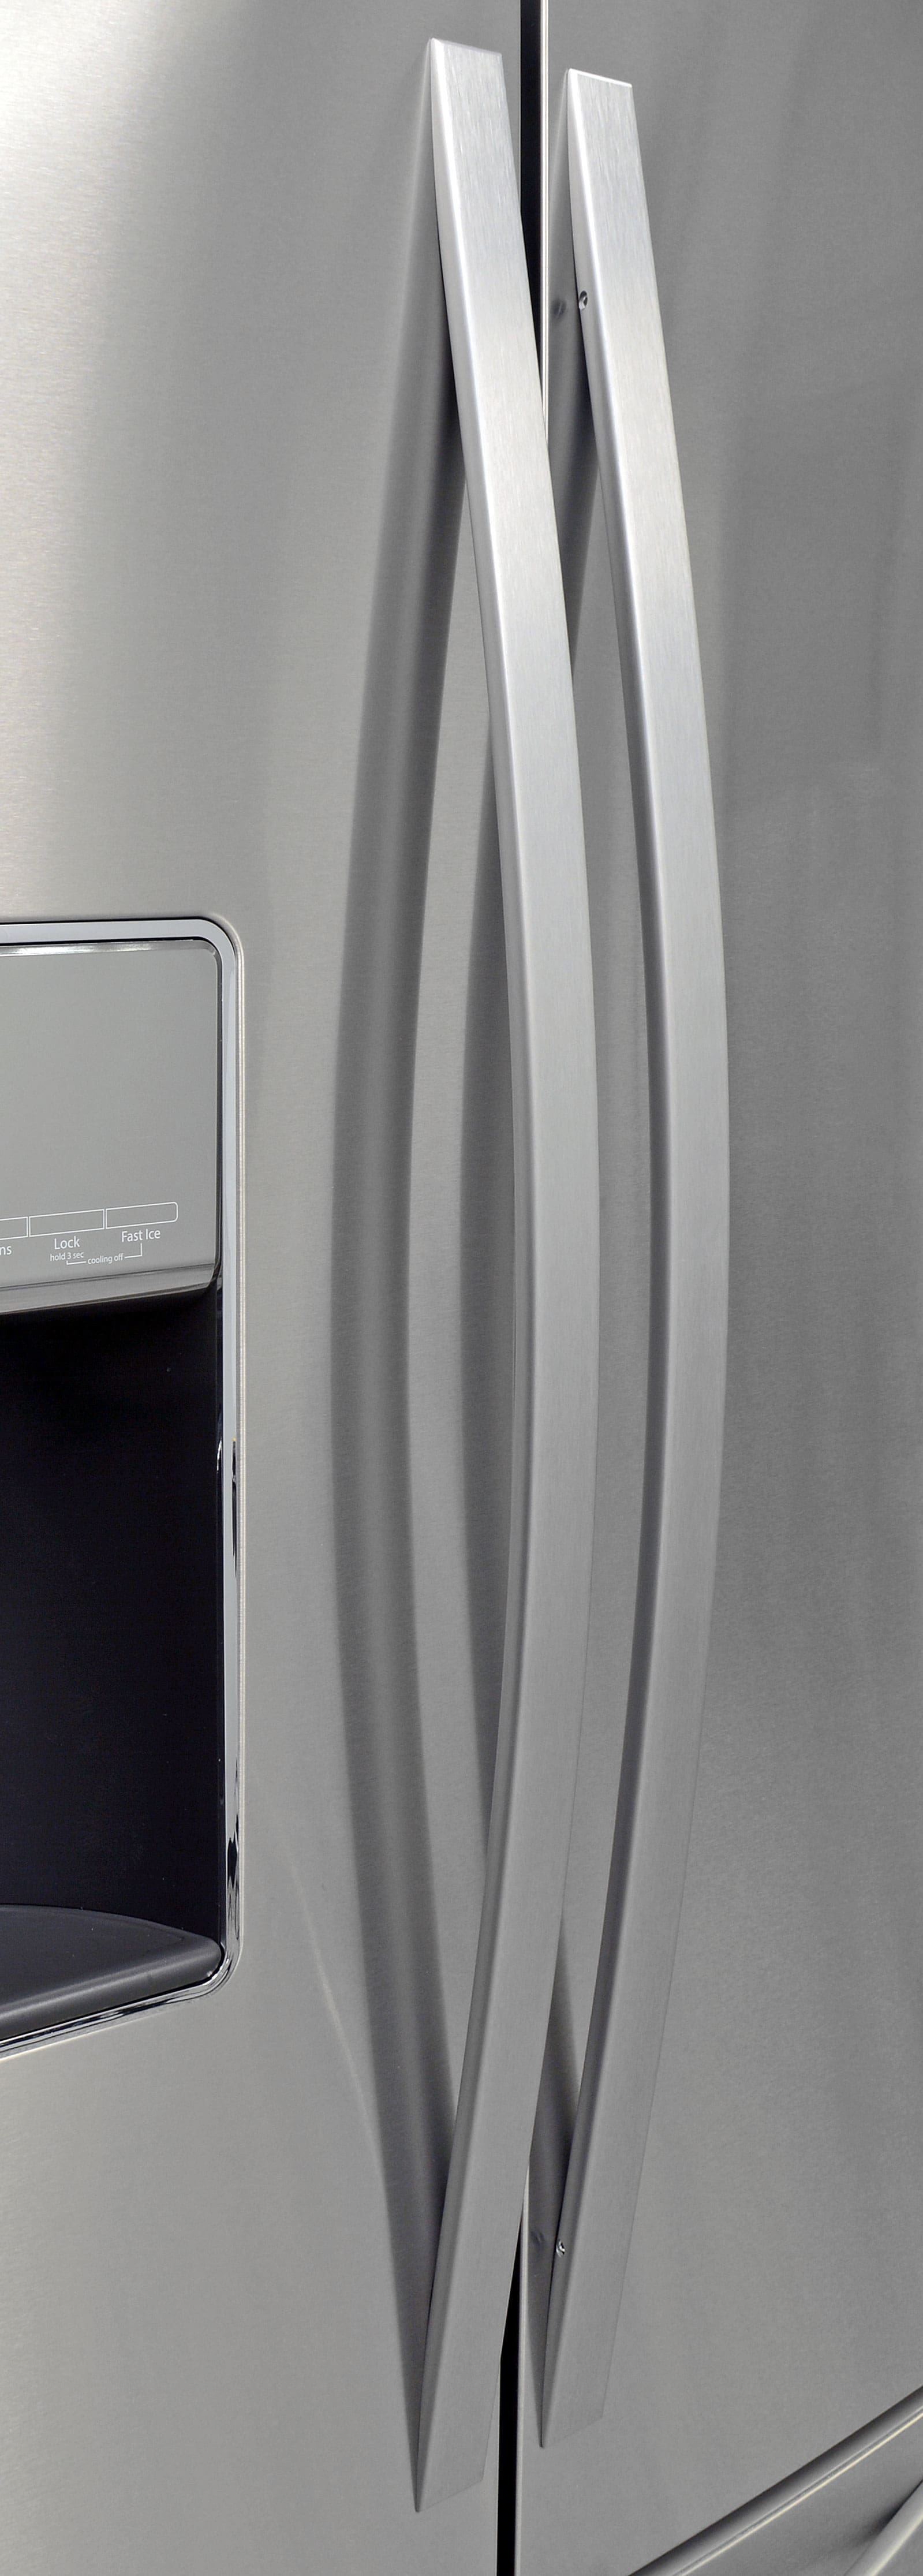 The Whirlpool WRF757SDEM's gently curving handles soften the fridge's overall look.